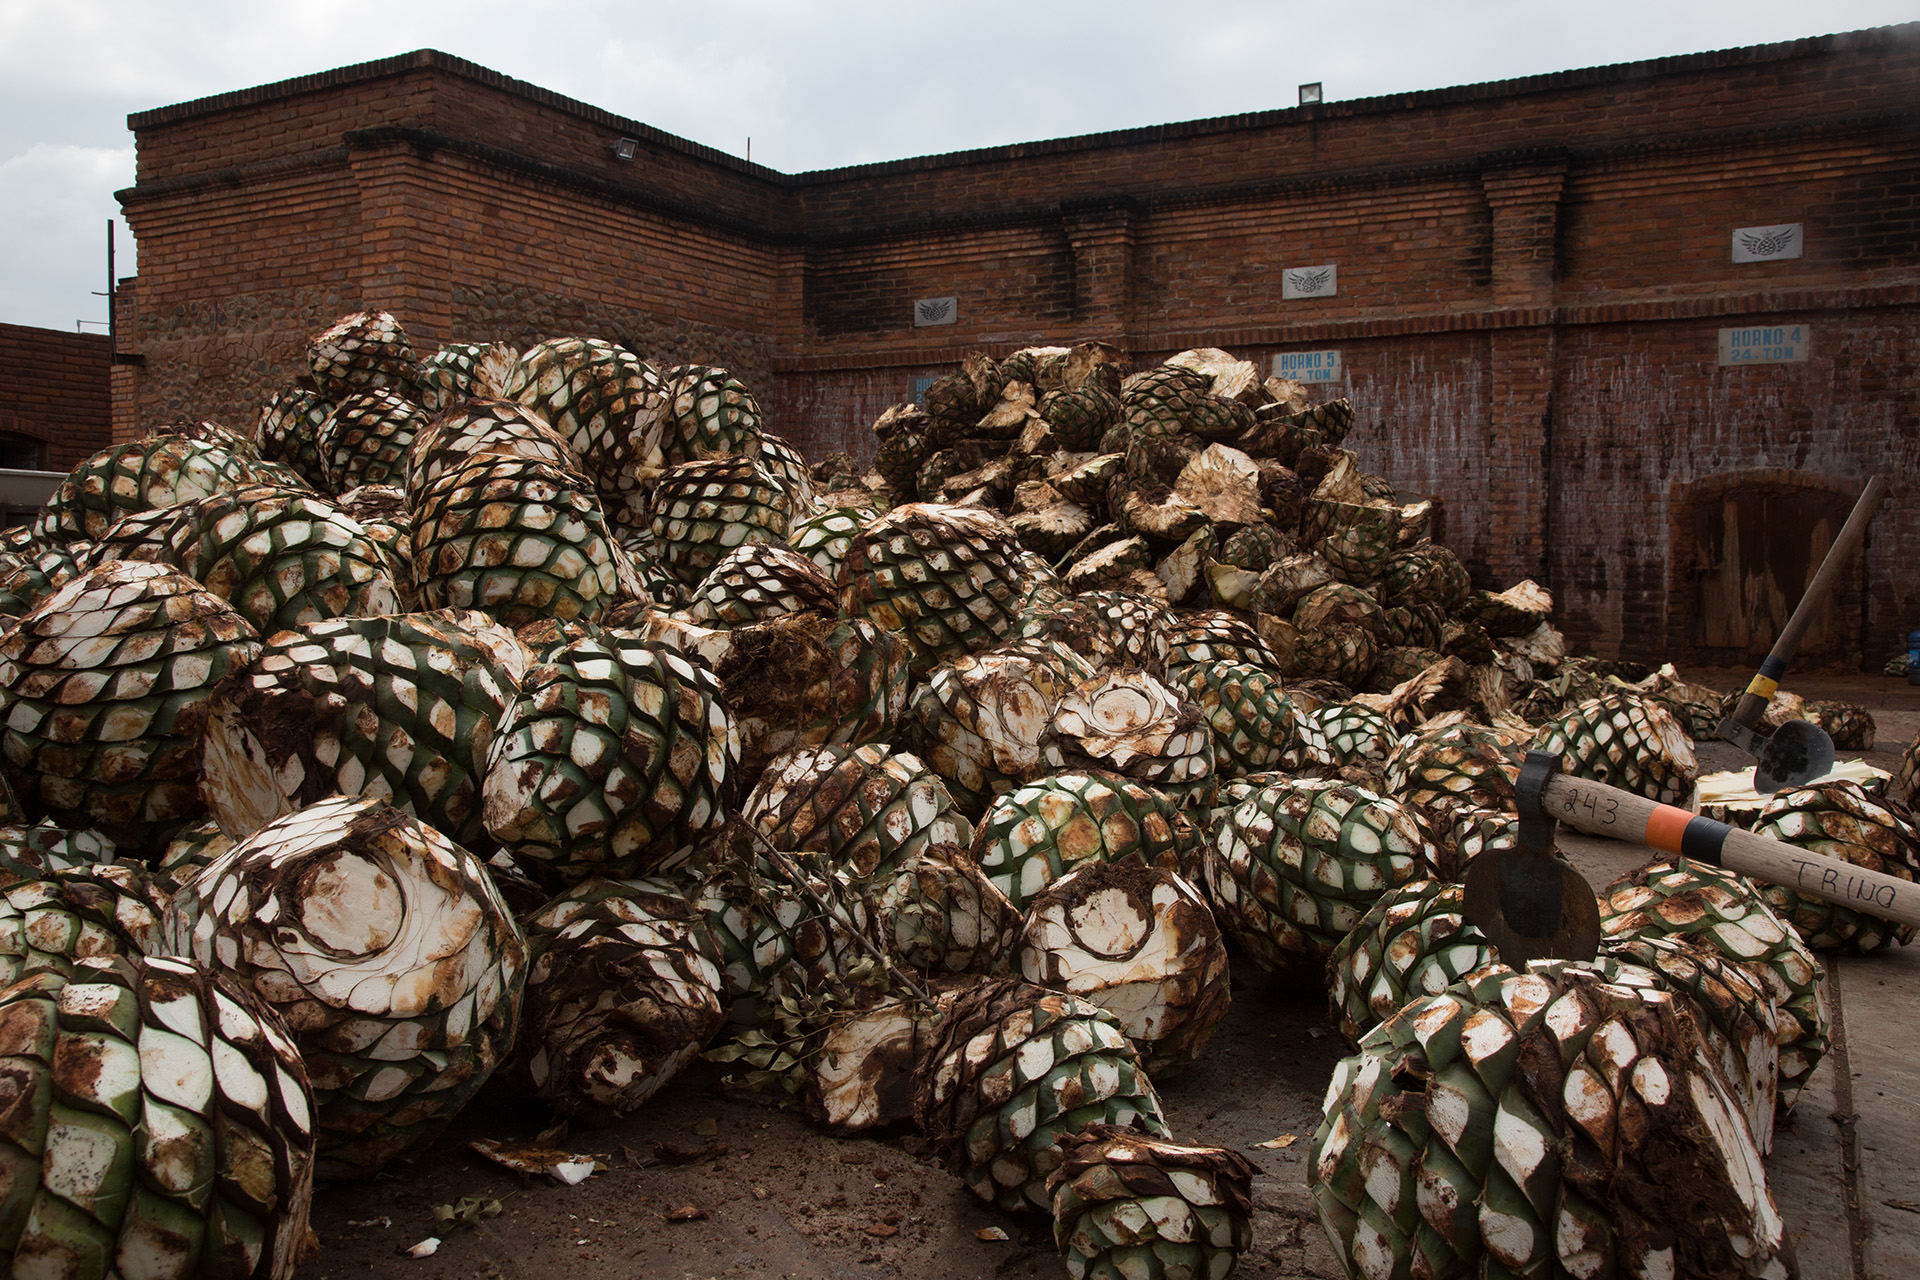 Agave hearts, or piñas, after being harvested